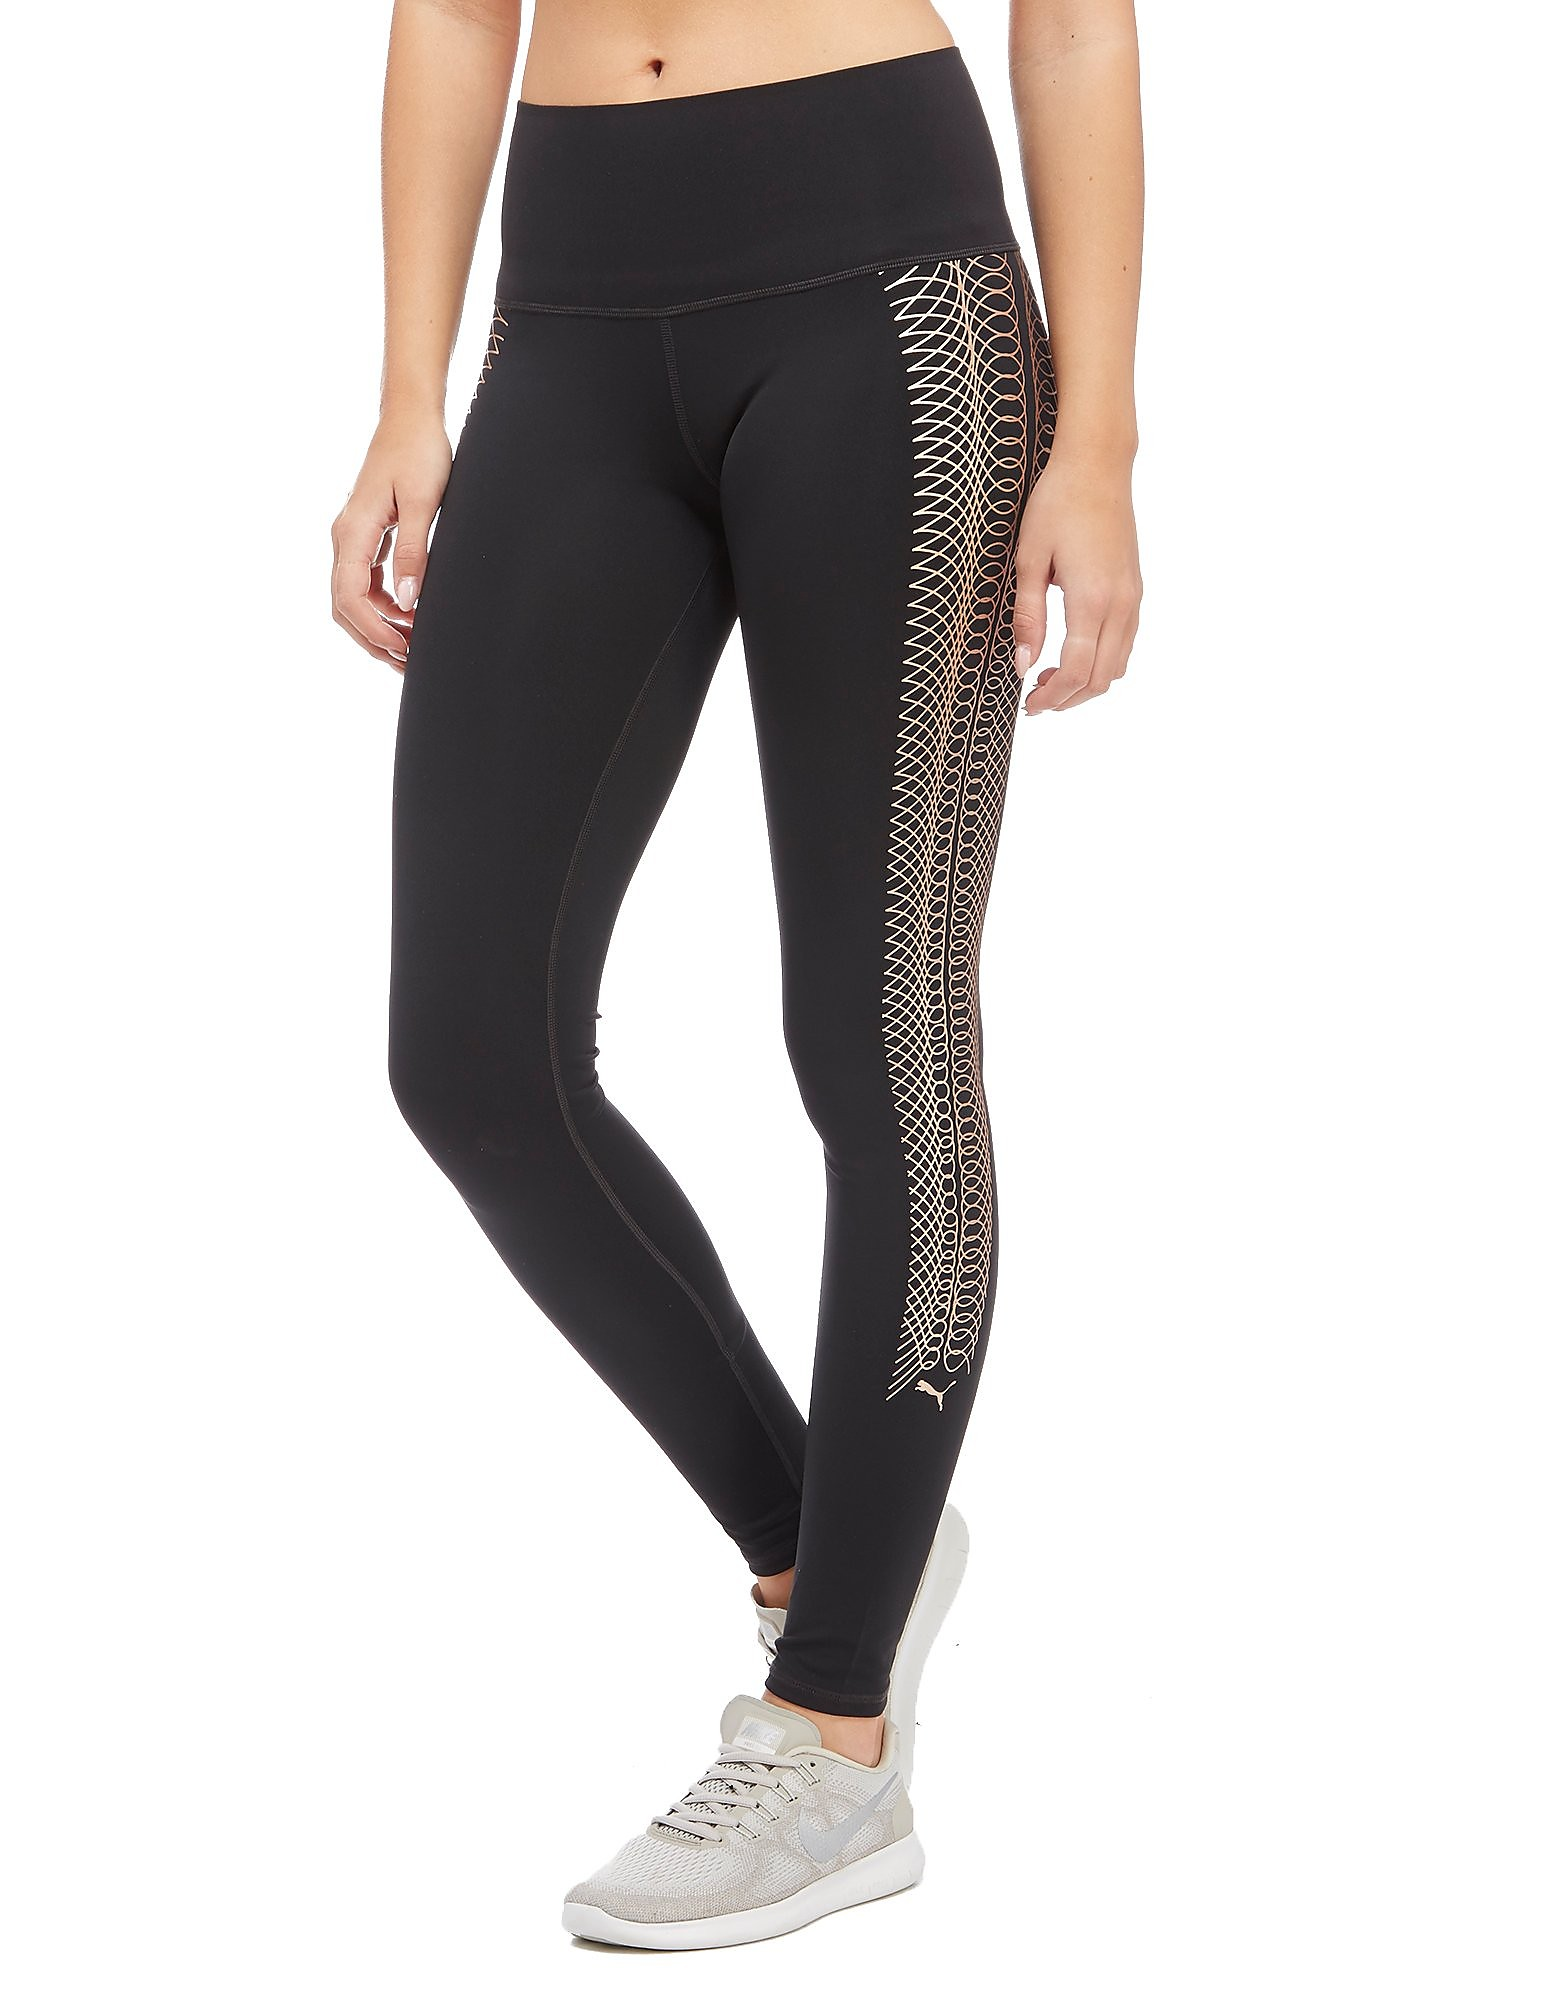 PUMA Leggings Rope Collection Metallic Tights